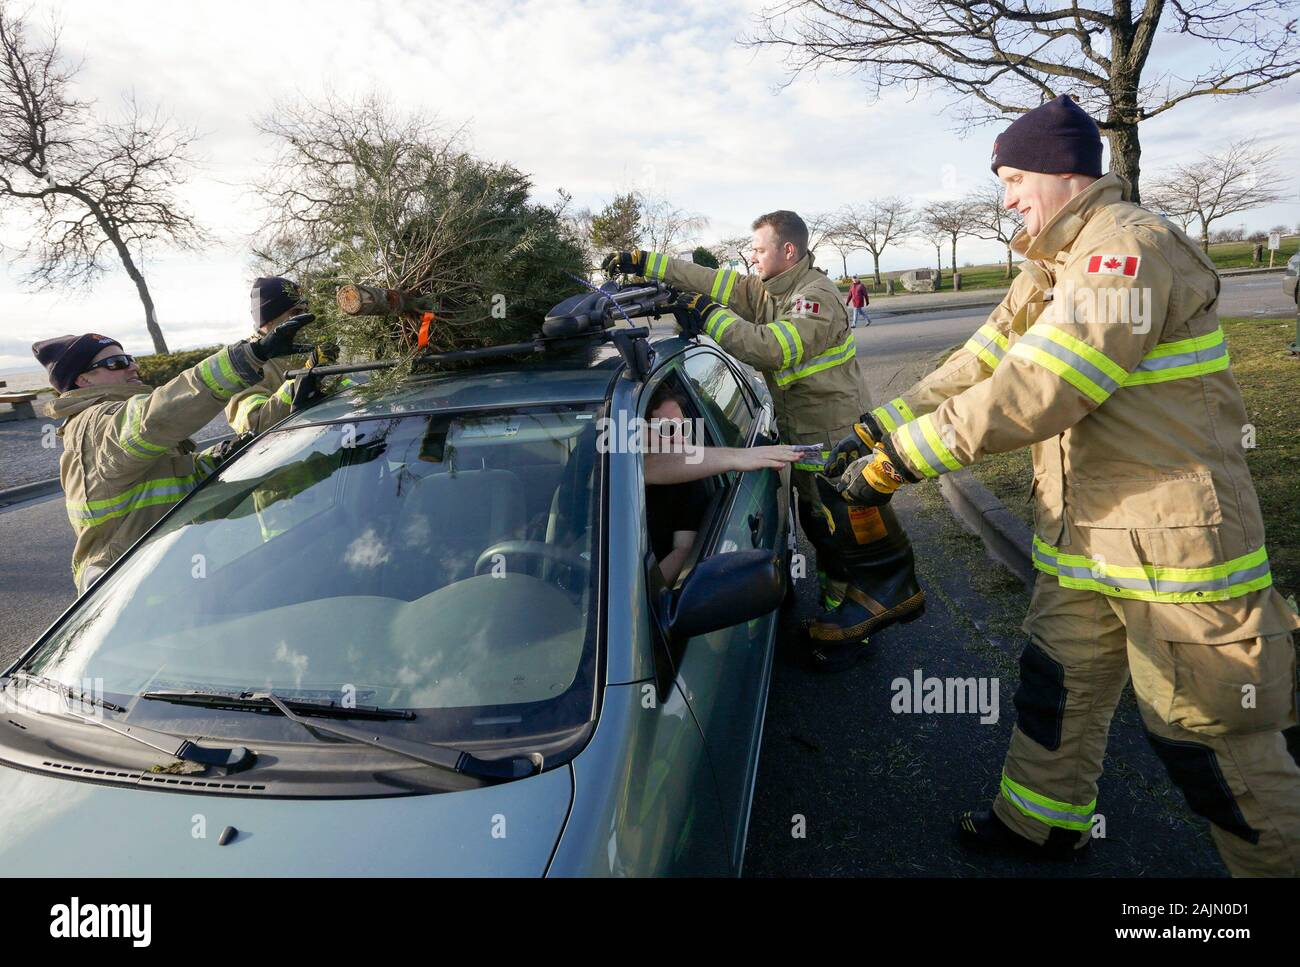 Richmond, Canada. 4th Jan, 2020. Firefighters remove a Christmas